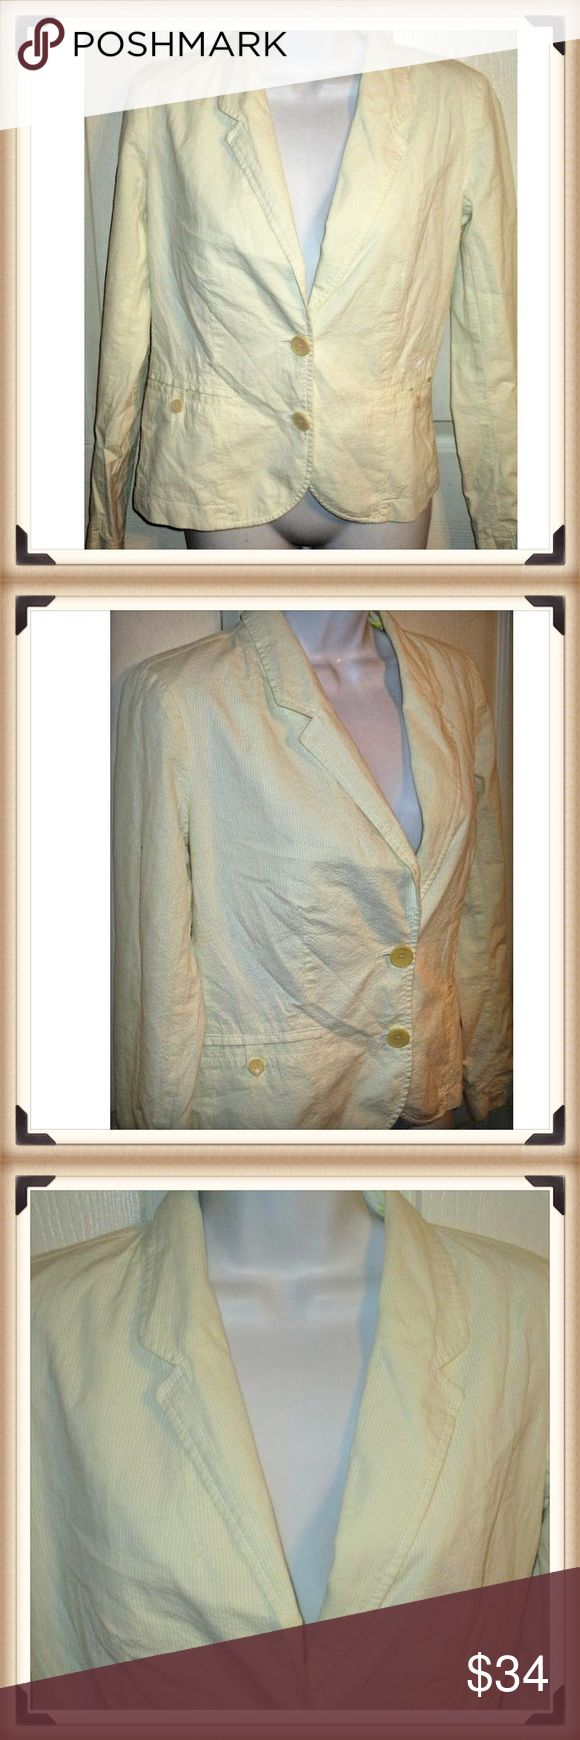 LACOSTE Pale Yellow Seersucker Blazer SZ 36 US 6 This is white and yellow Striped Seersucker Jacket  Size 36... Womens Size 6  The bust measures 36 inches and length is 22 1/2 inches  Fully lined Lacoste Jackets & Coats Blazers